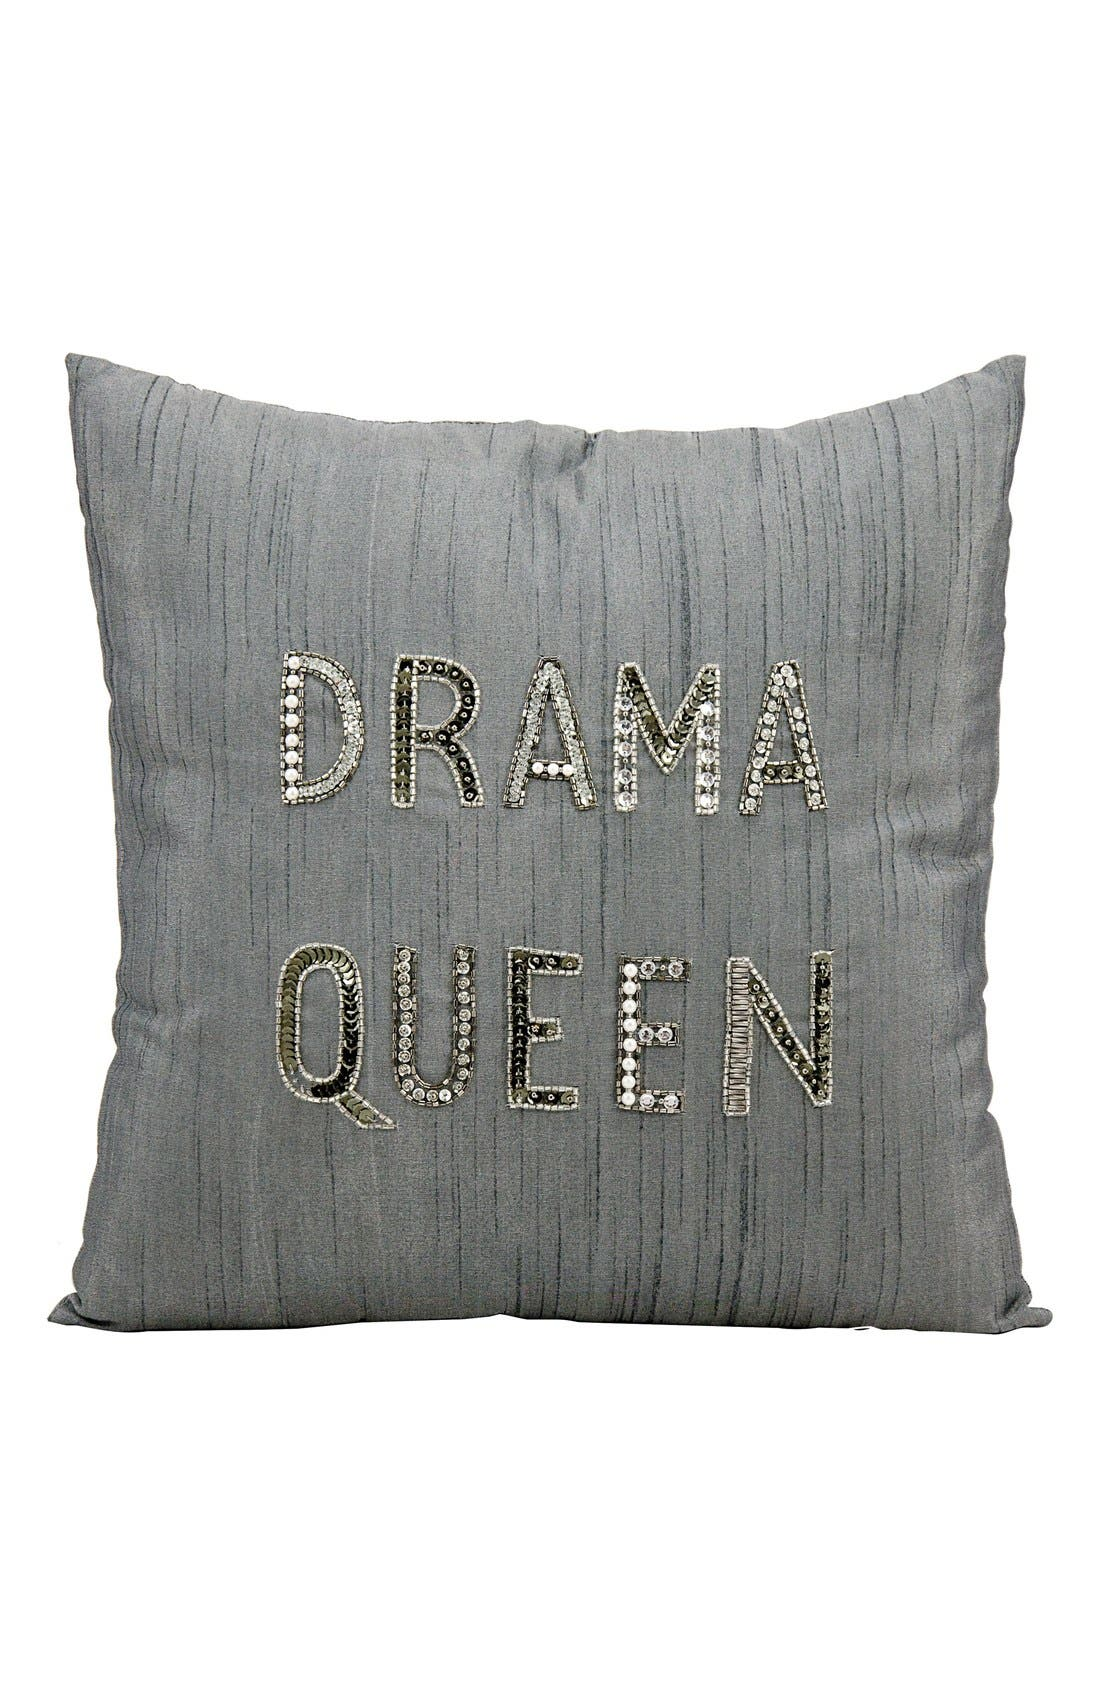 Alternate Image 1 Selected - Mina Victory 'Drama Queen' Pillow